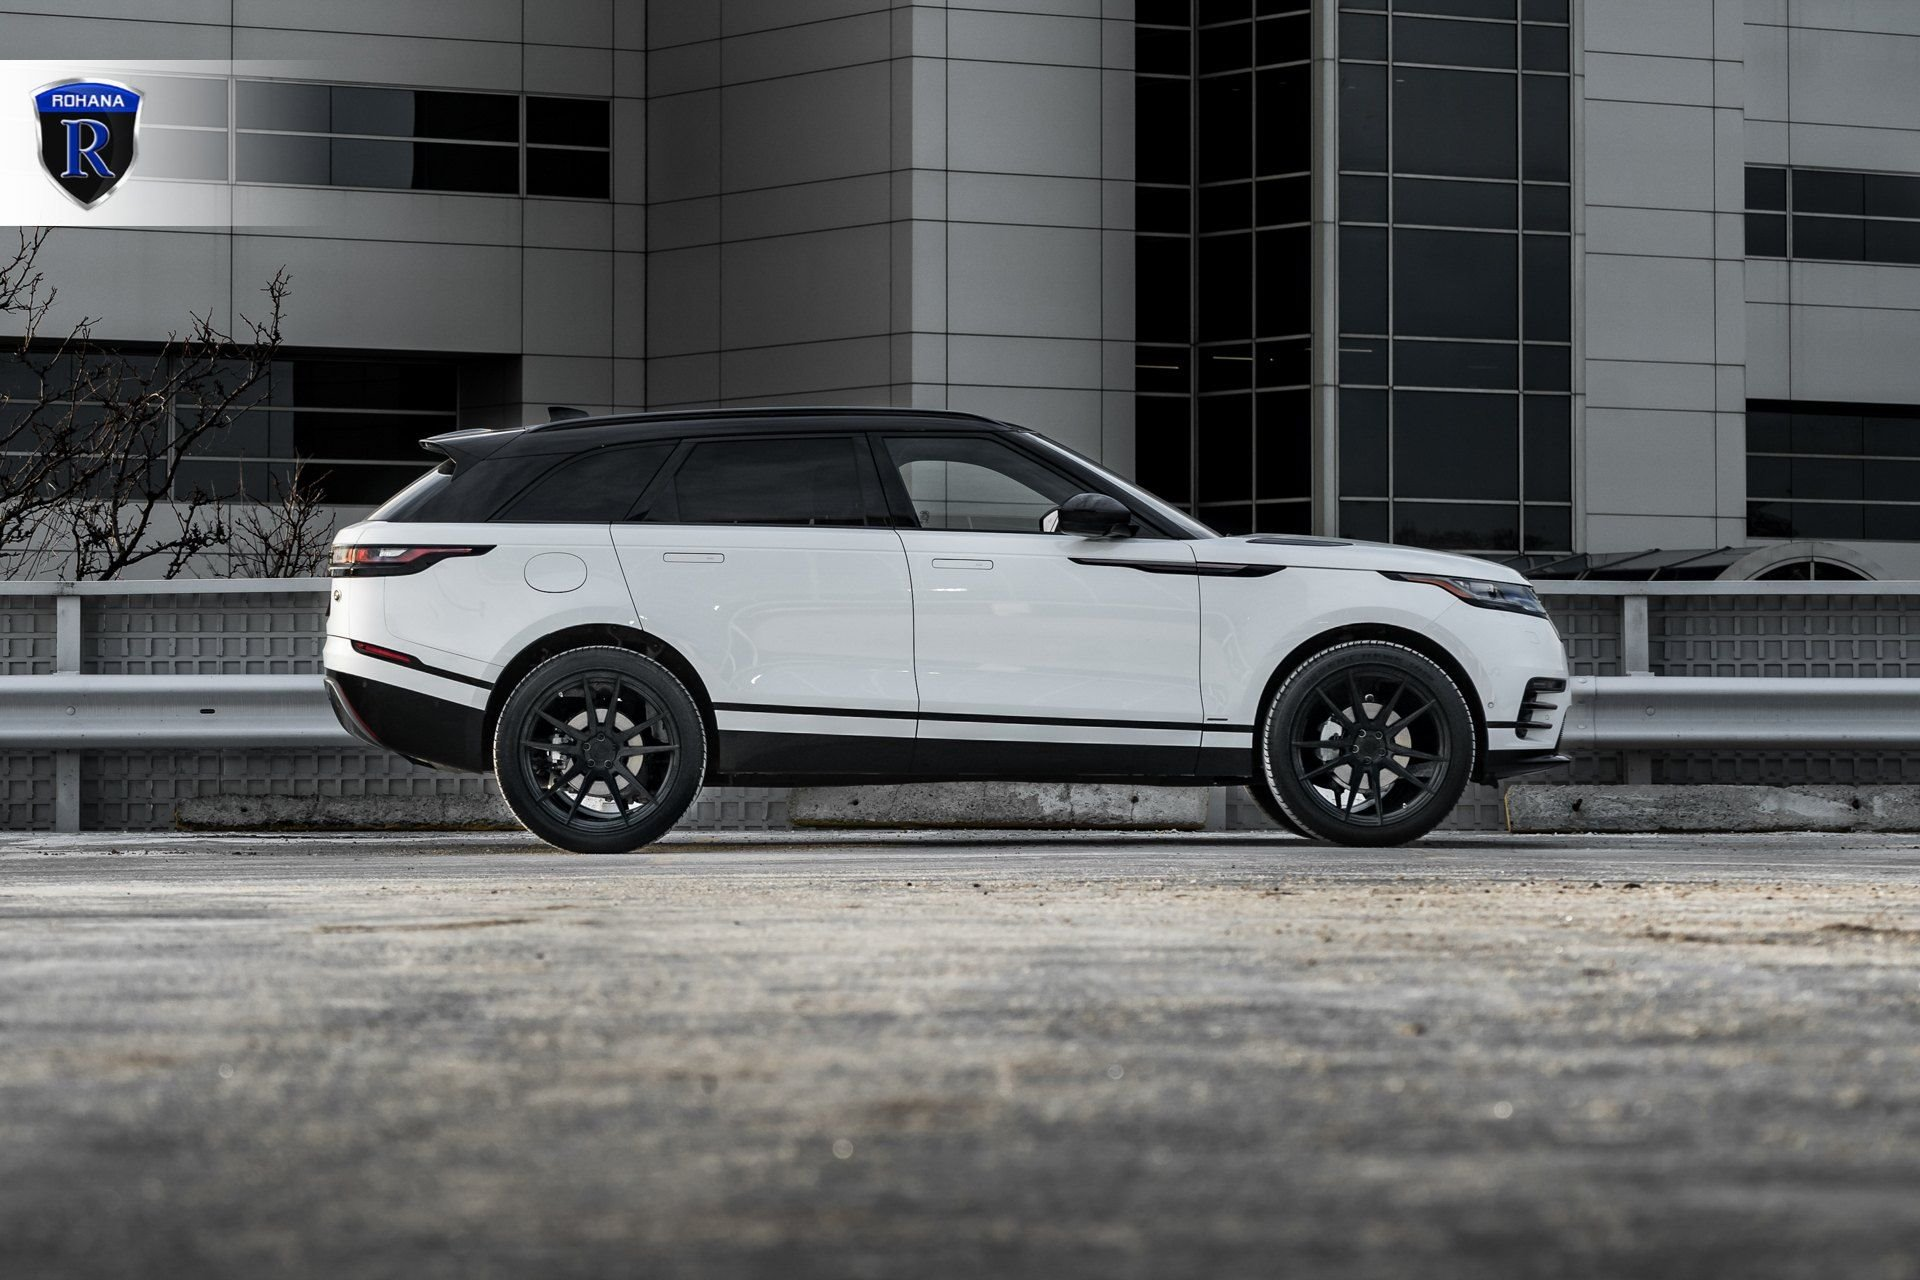 New 2019 Land Rover-Range Rover Velar P340 R-Dynamic SE Range Rover Velar P340 R-Dynamic SE for sale $65,600 at M and V Leasing in Brooklyn NY 11223 1